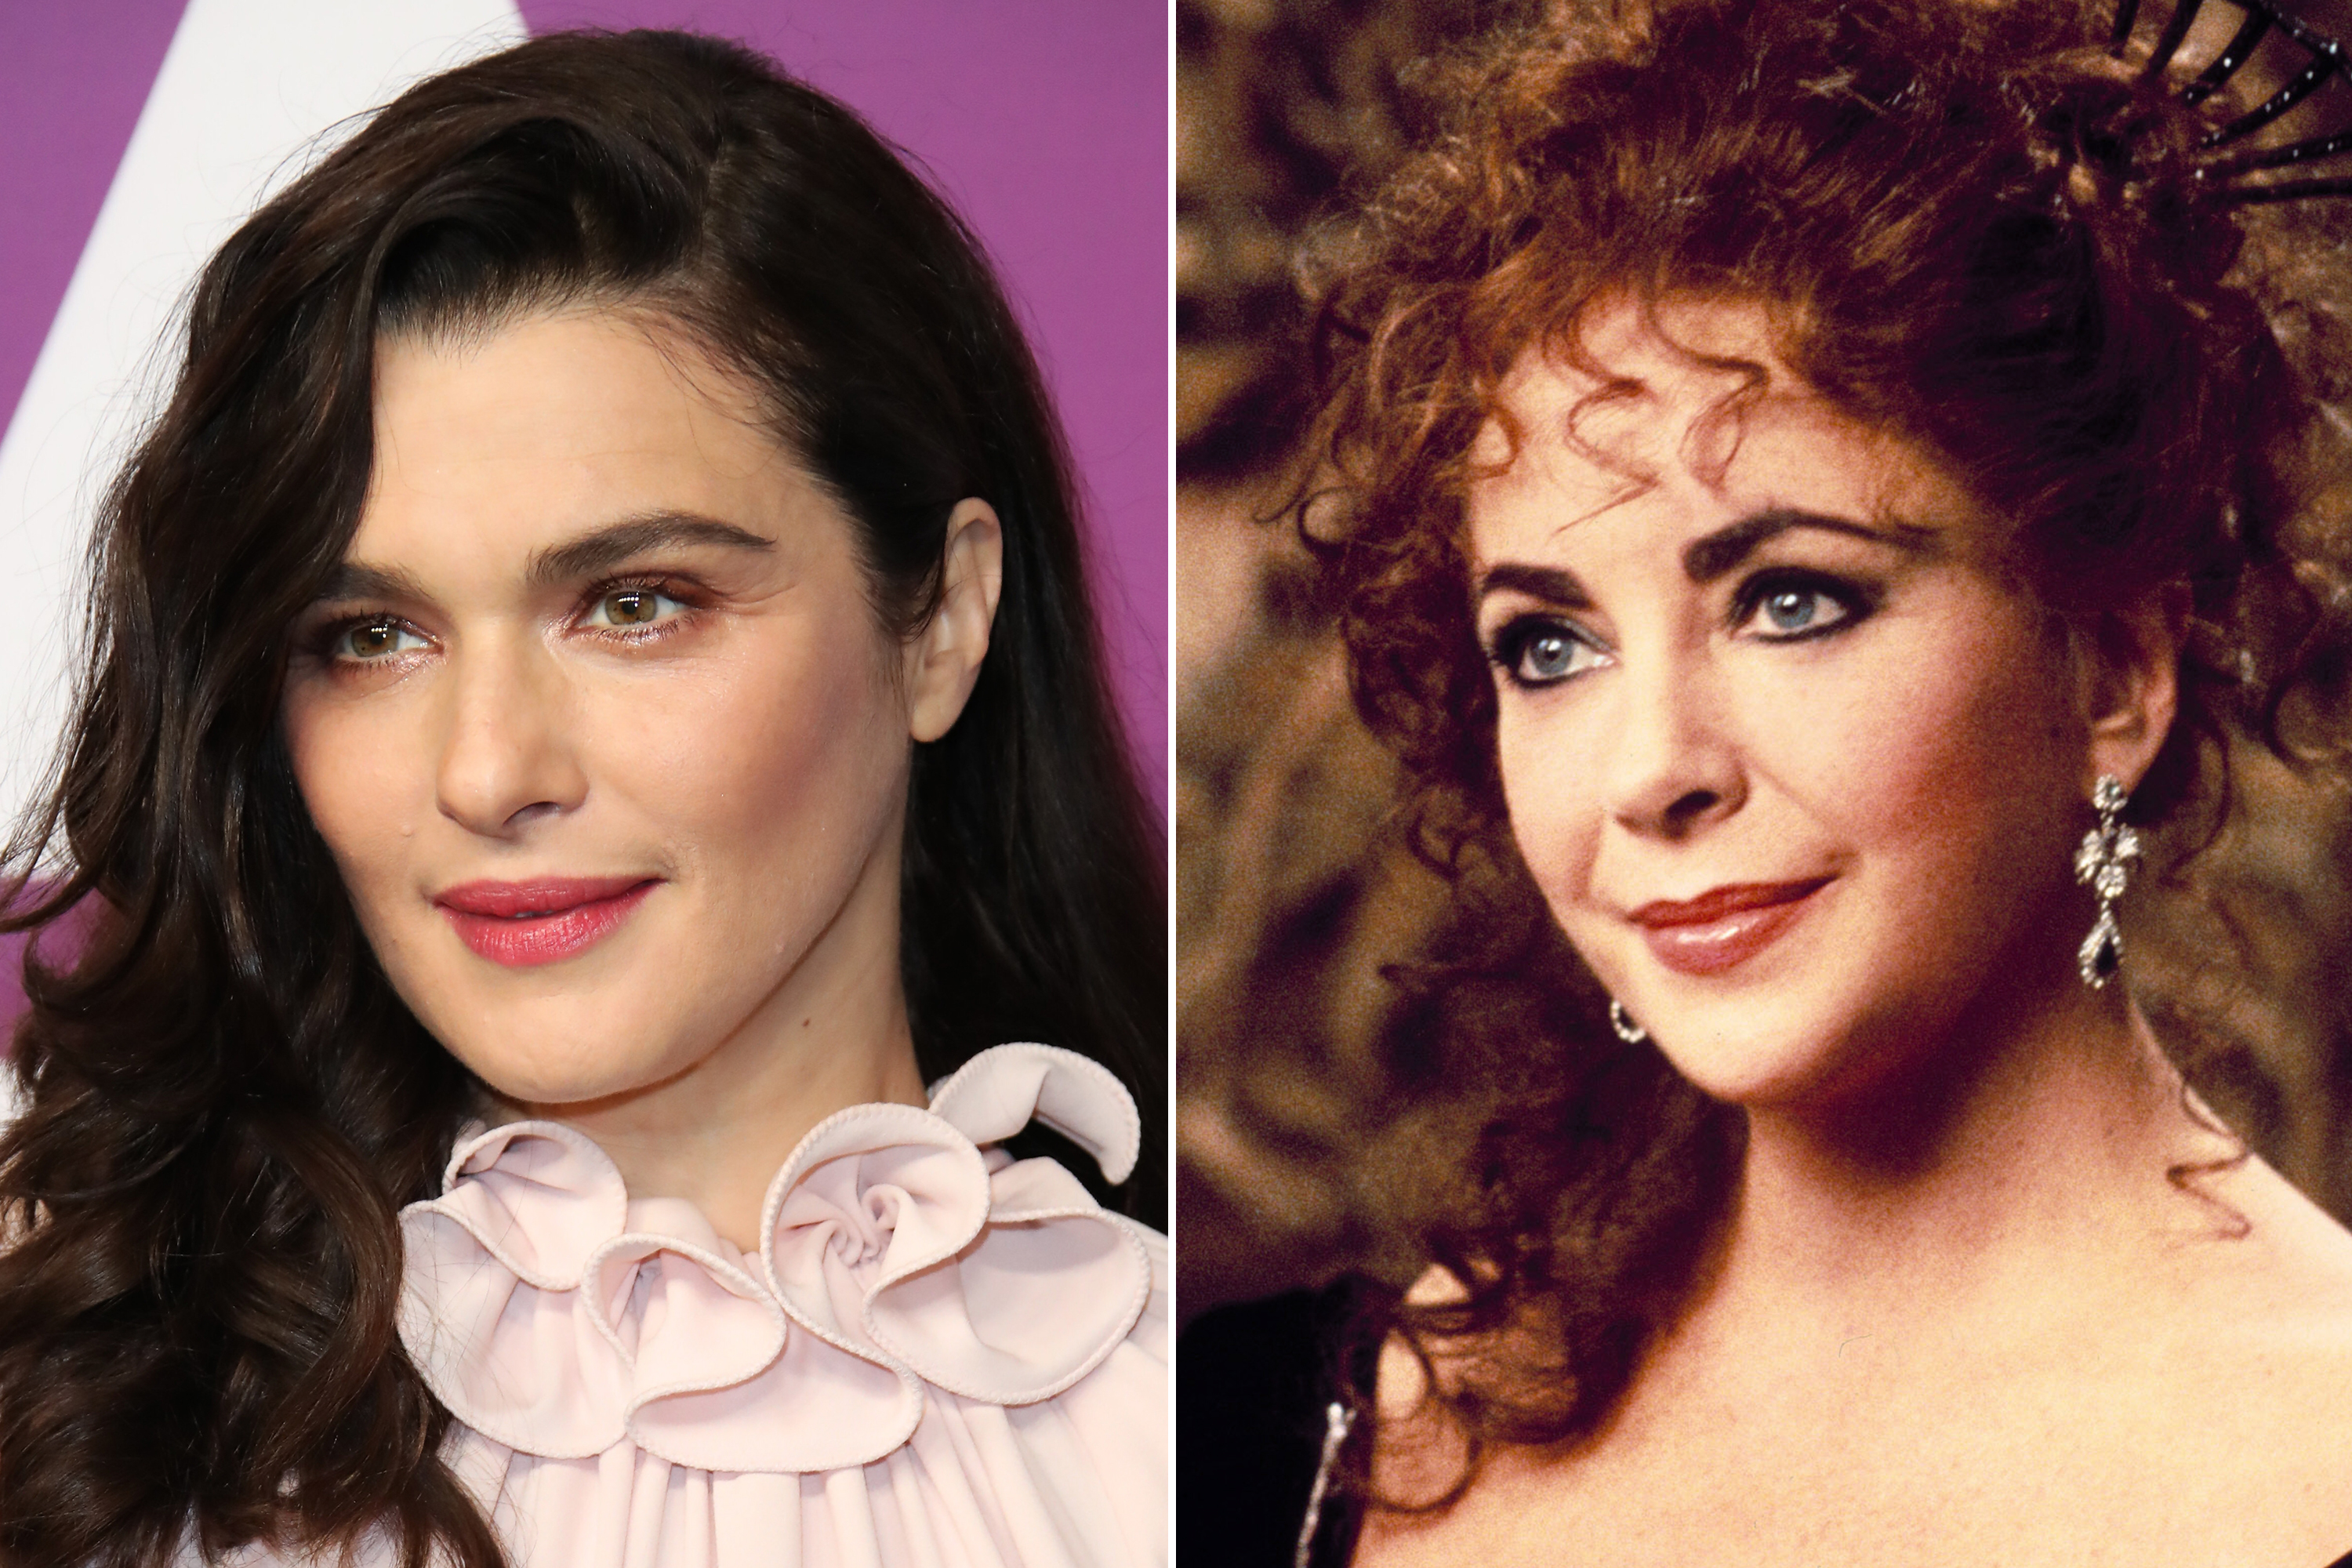 Rachel Weisz cast as Elizabeth Taylor in biopic, but can she deliver?